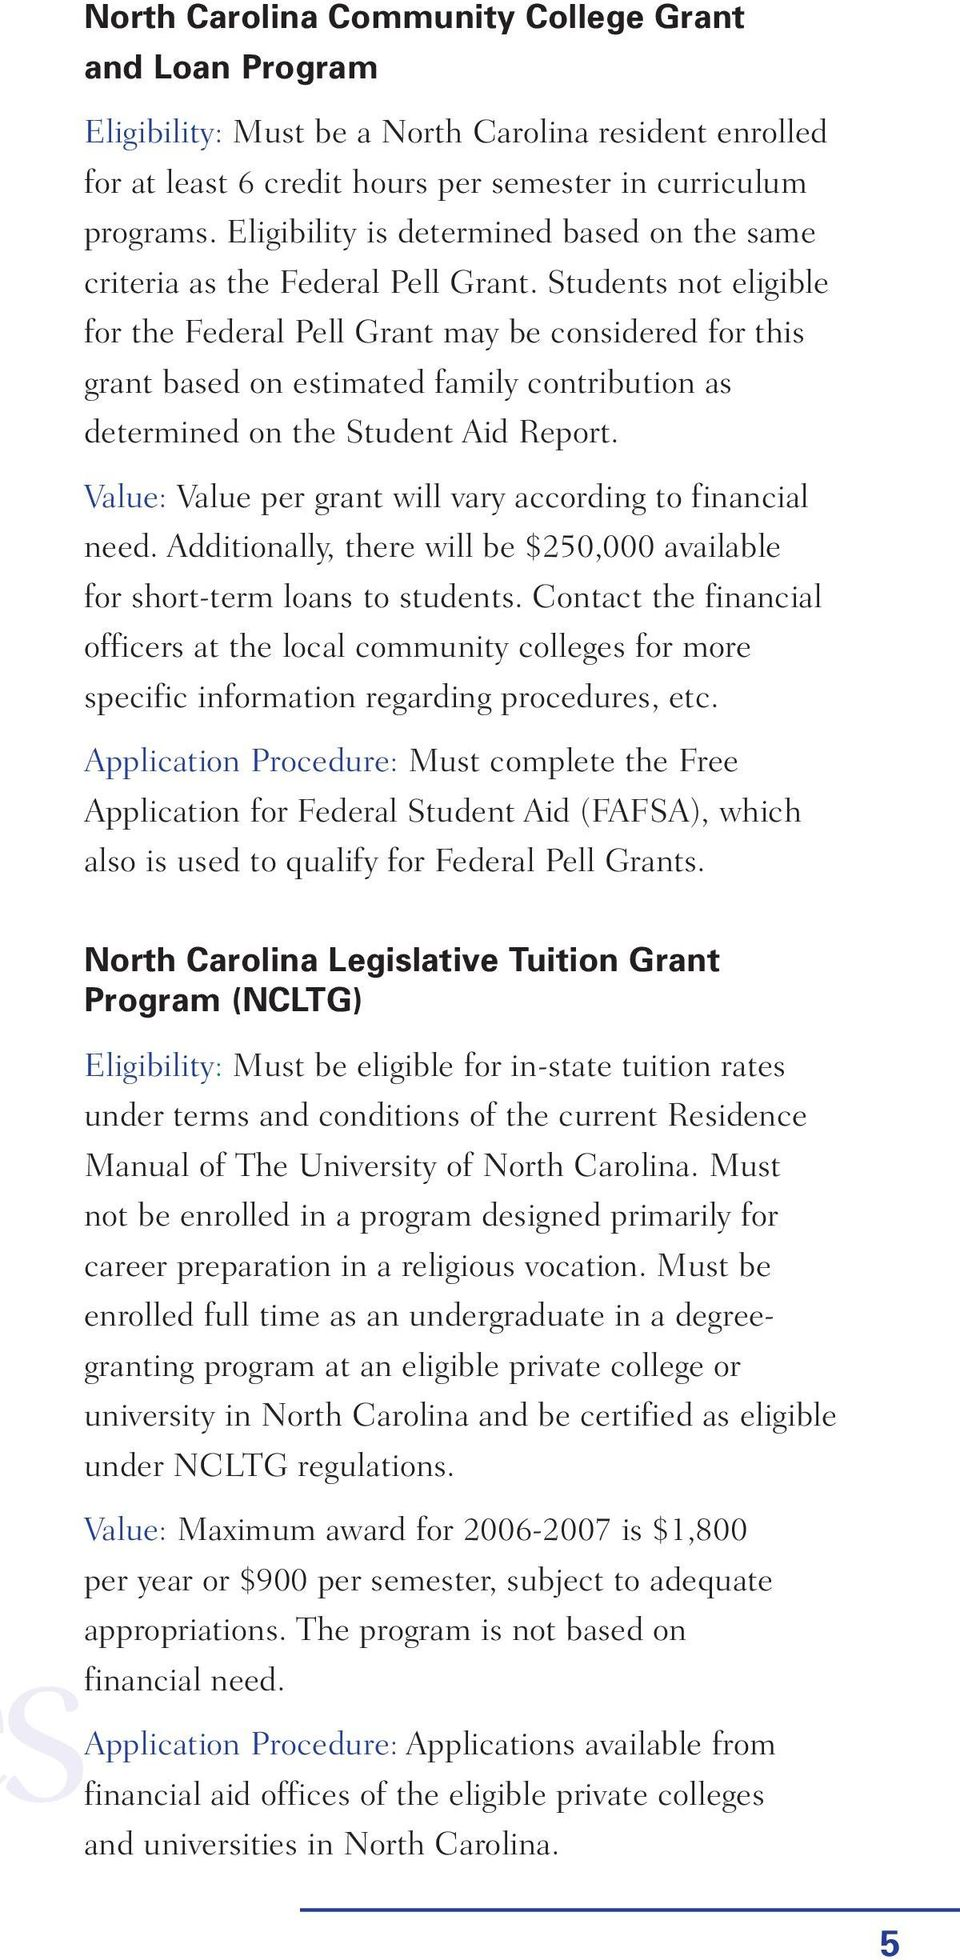 Students not eligible for the Federal Pell Grant may be considered for this grant based on estimated family contribution as determined on the Student Aid Report.